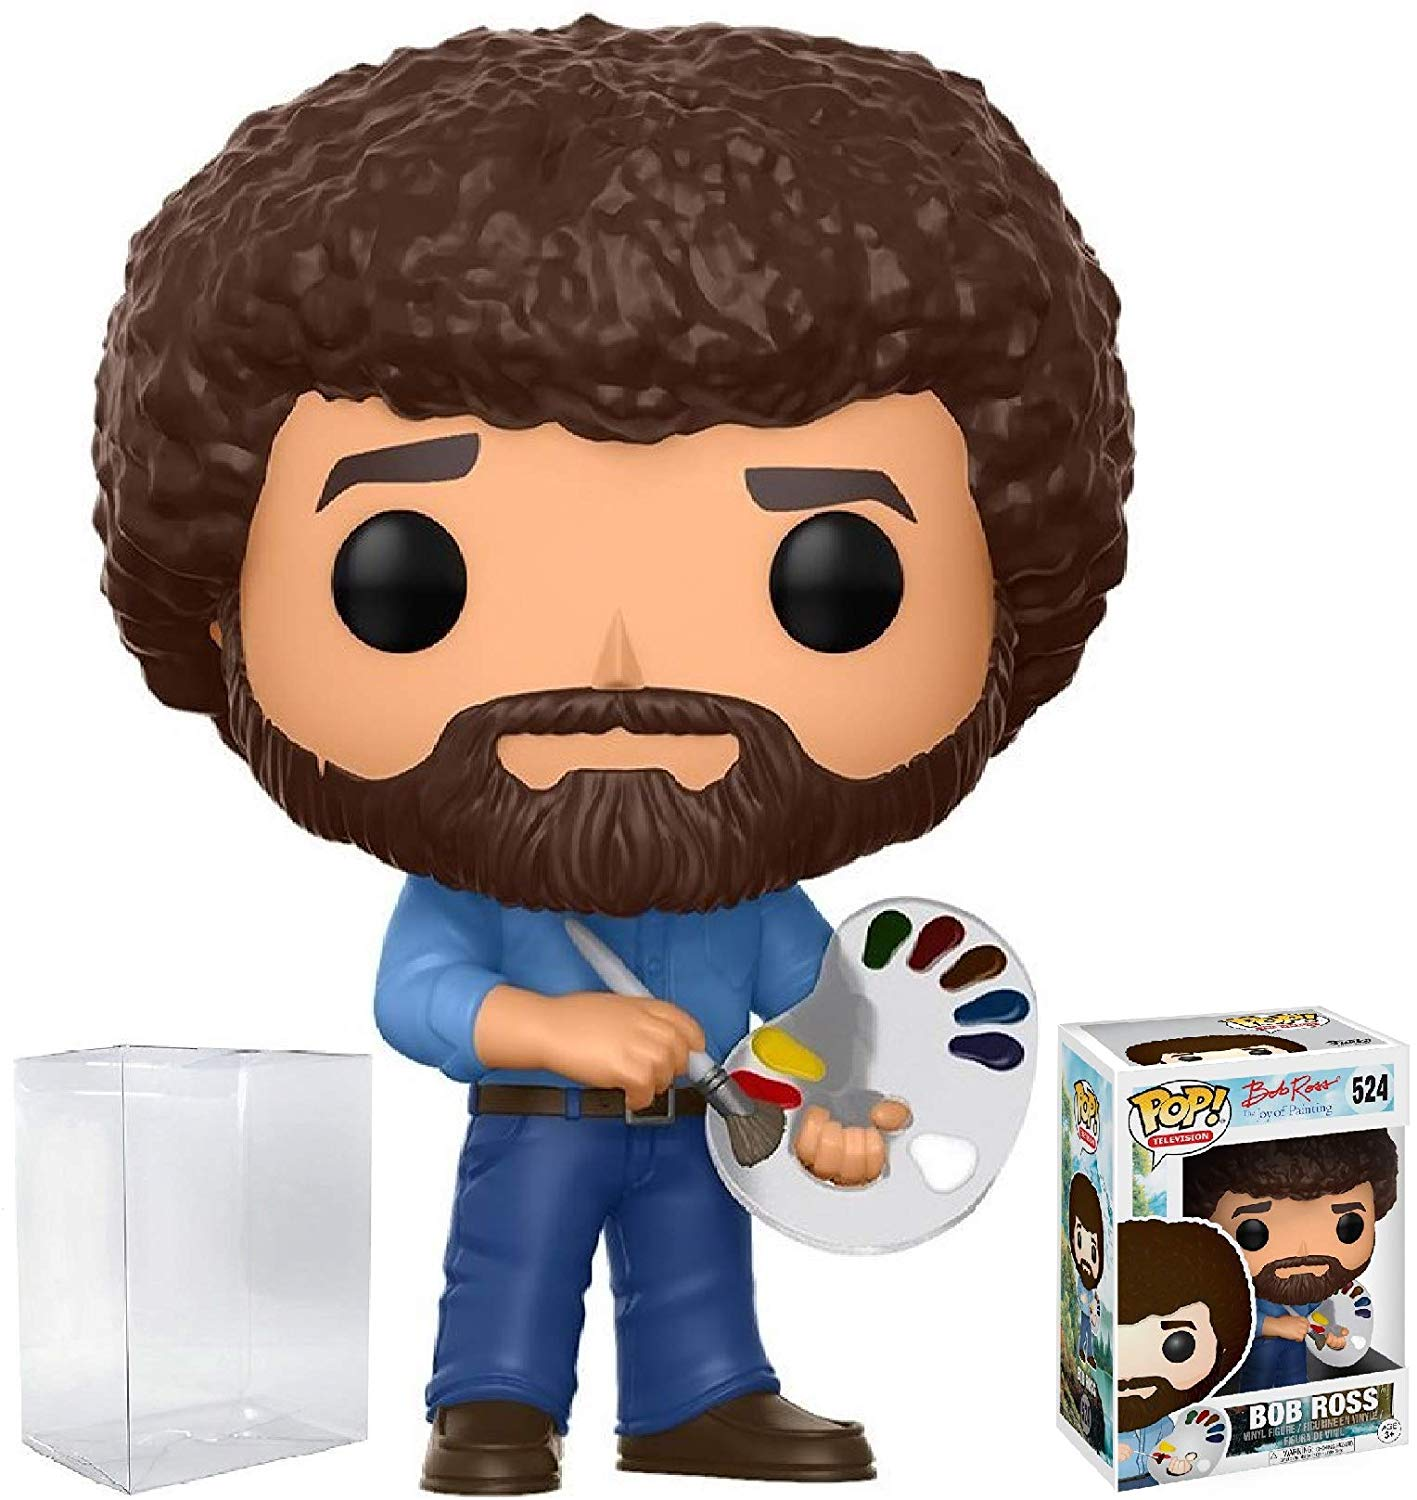 BobRoss Funko Pop! Television: The Joy of Painting #524 Vinyl Figure (Bundled with Pop Box Protector Case)